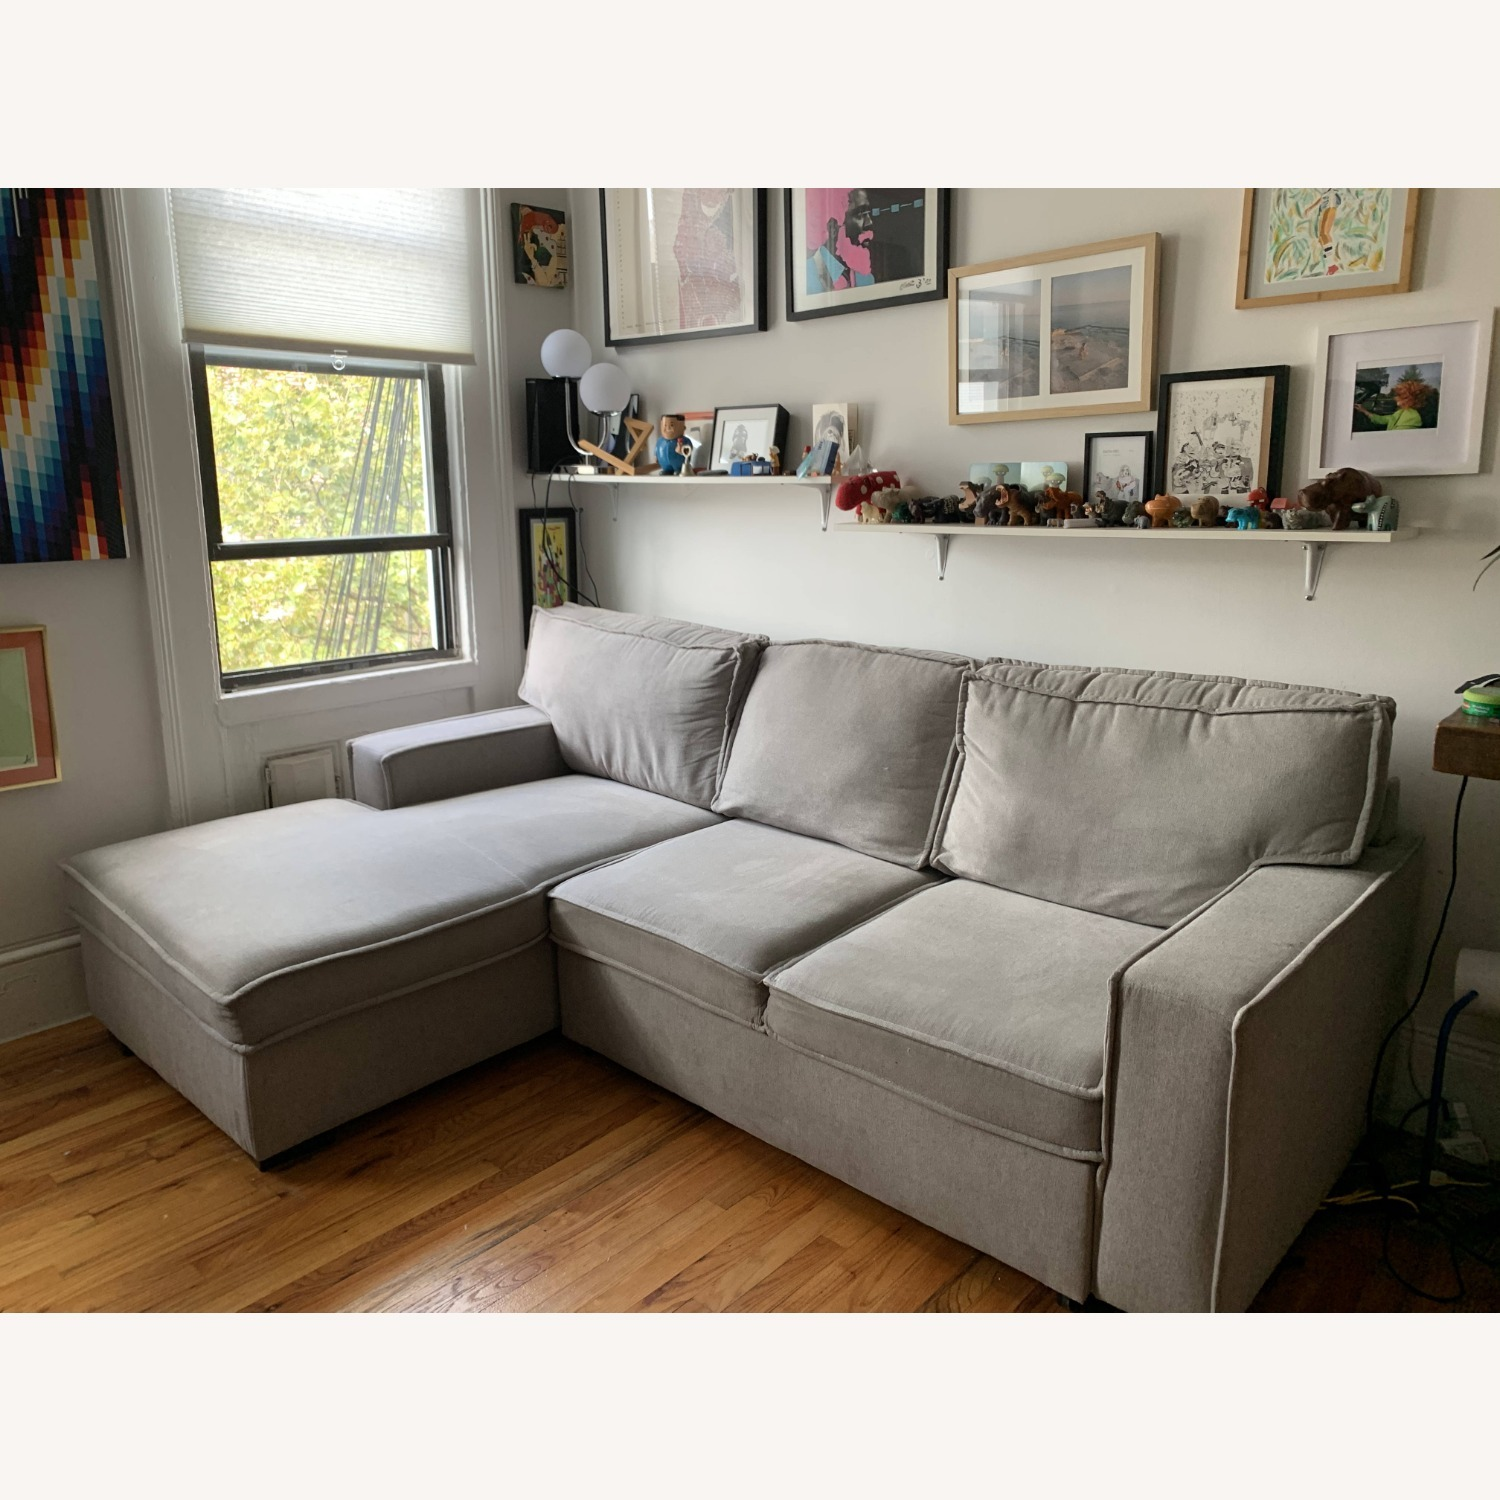 Bob's Track Arm Sectional with Pop-Up Sleeper - image-7